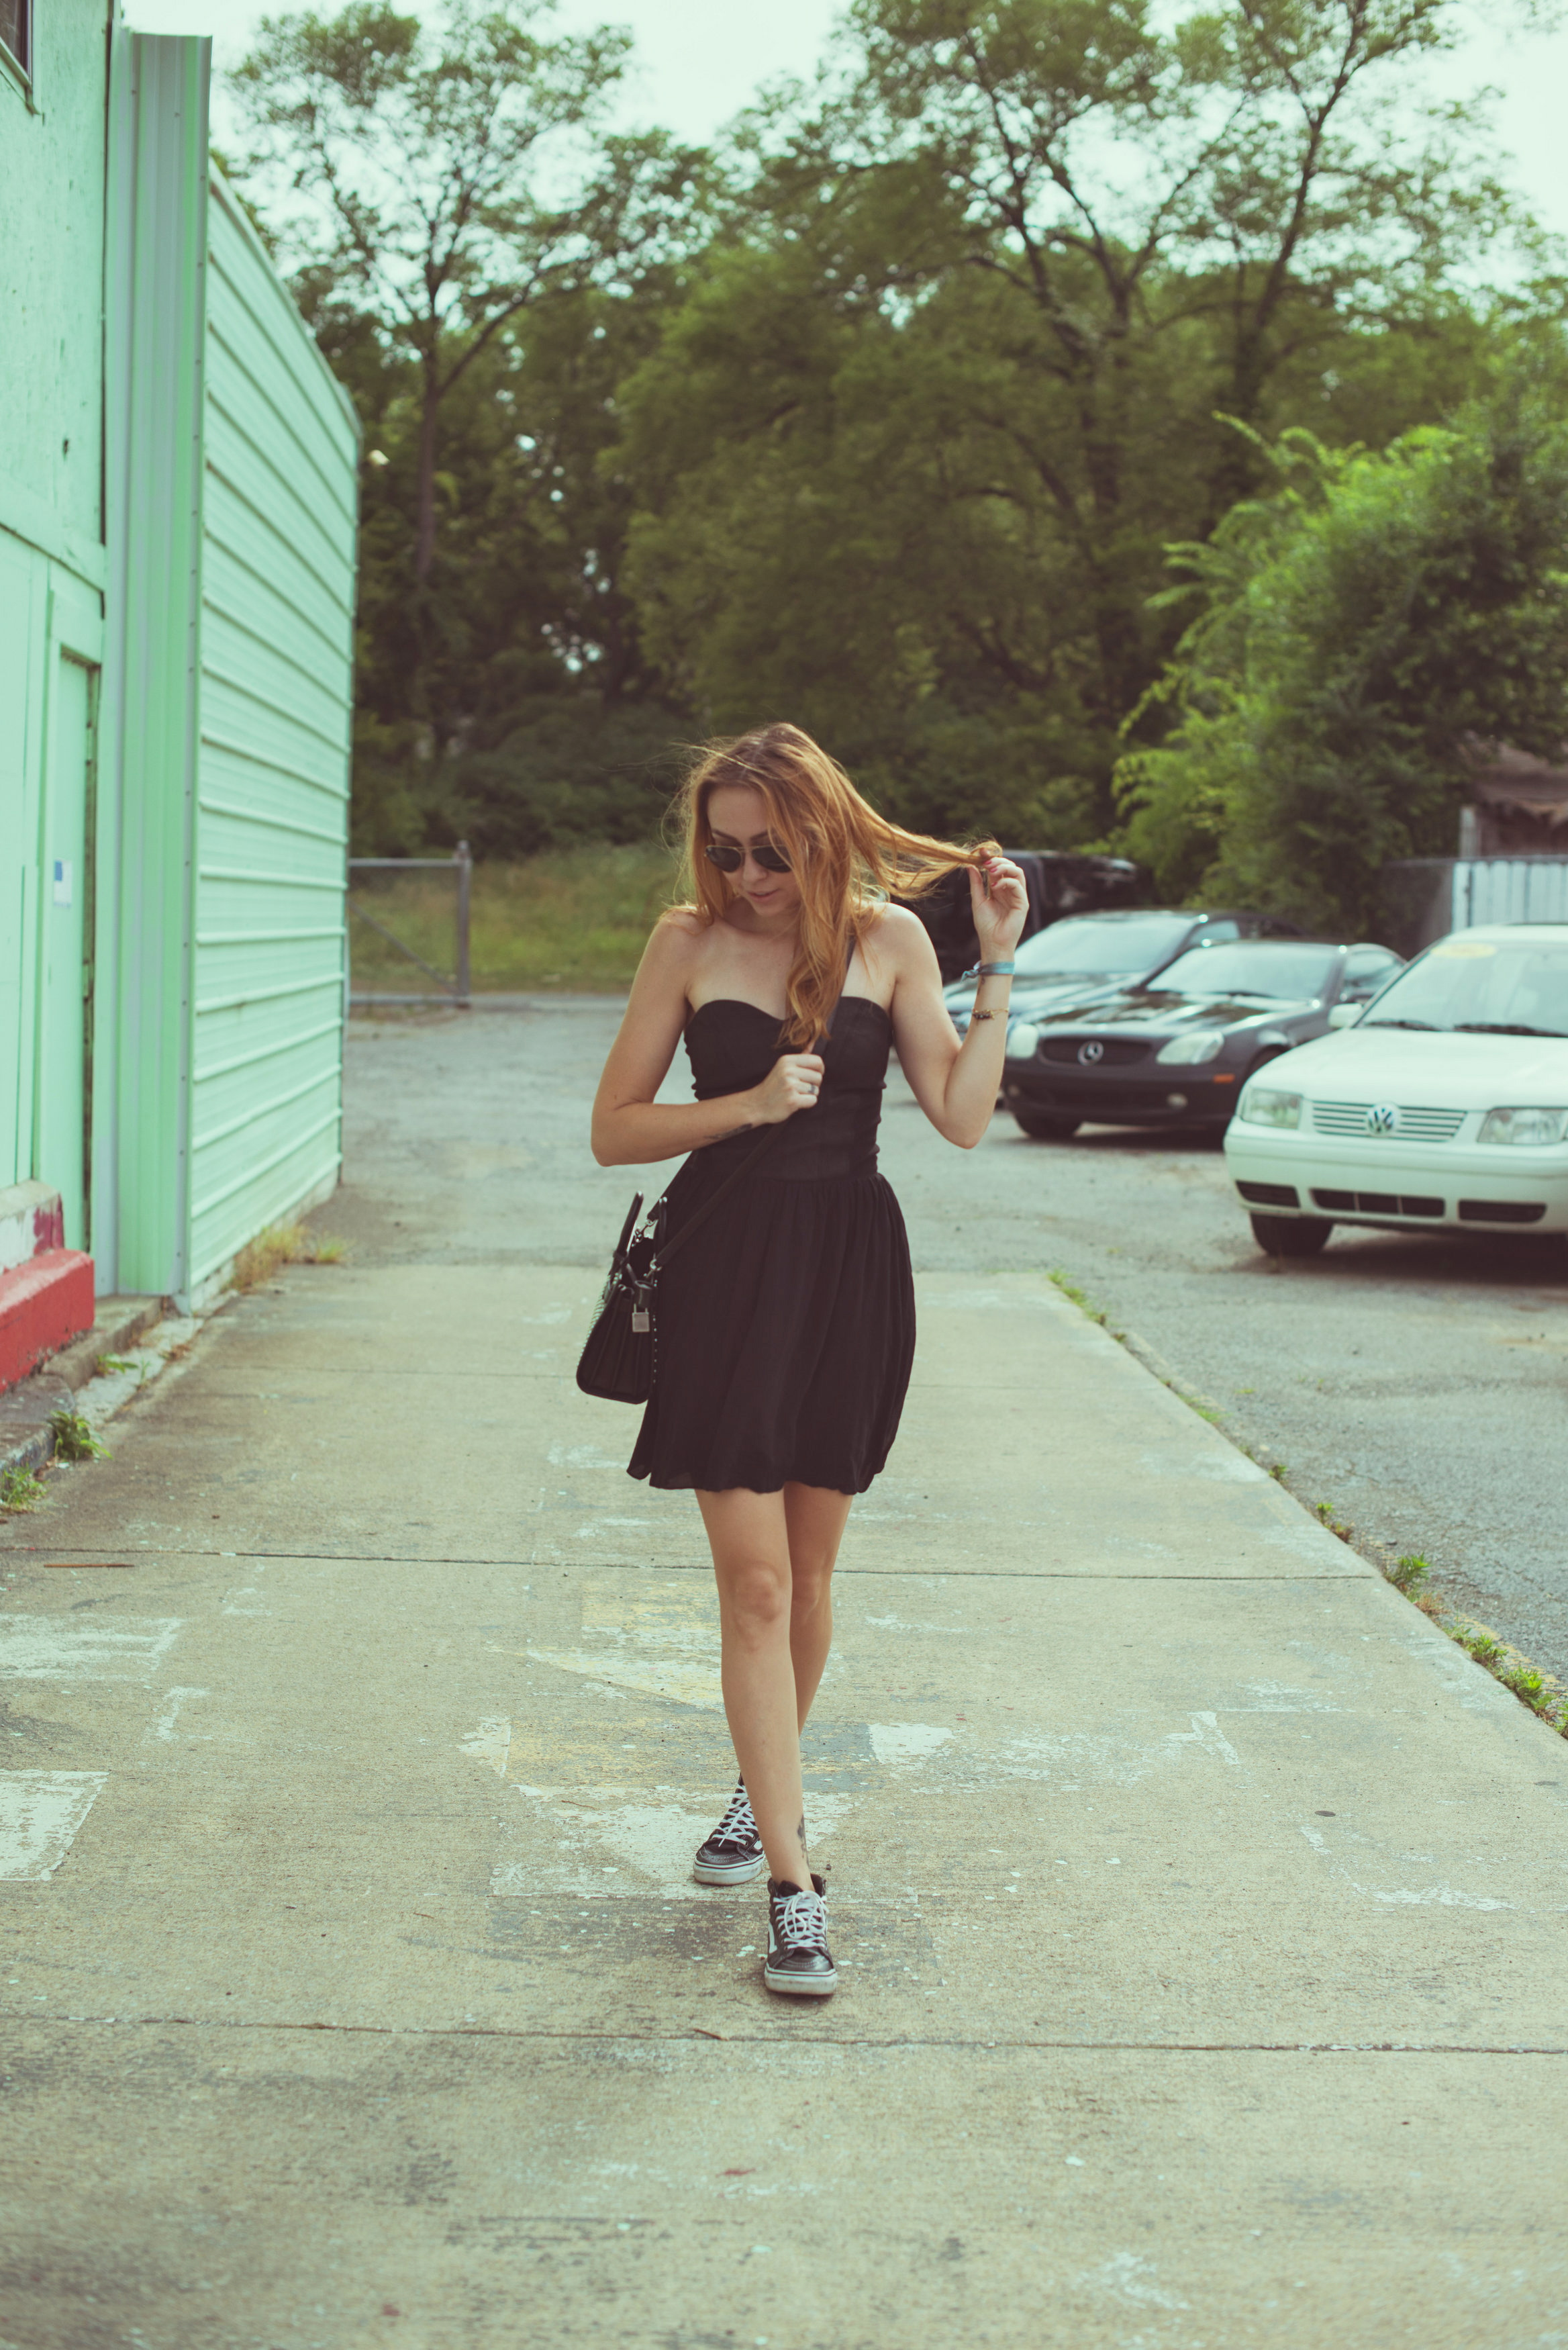 Dress - vintage  | Sneaks - Vans | Bag - Saint Laurent || photos by Blythe Thomas